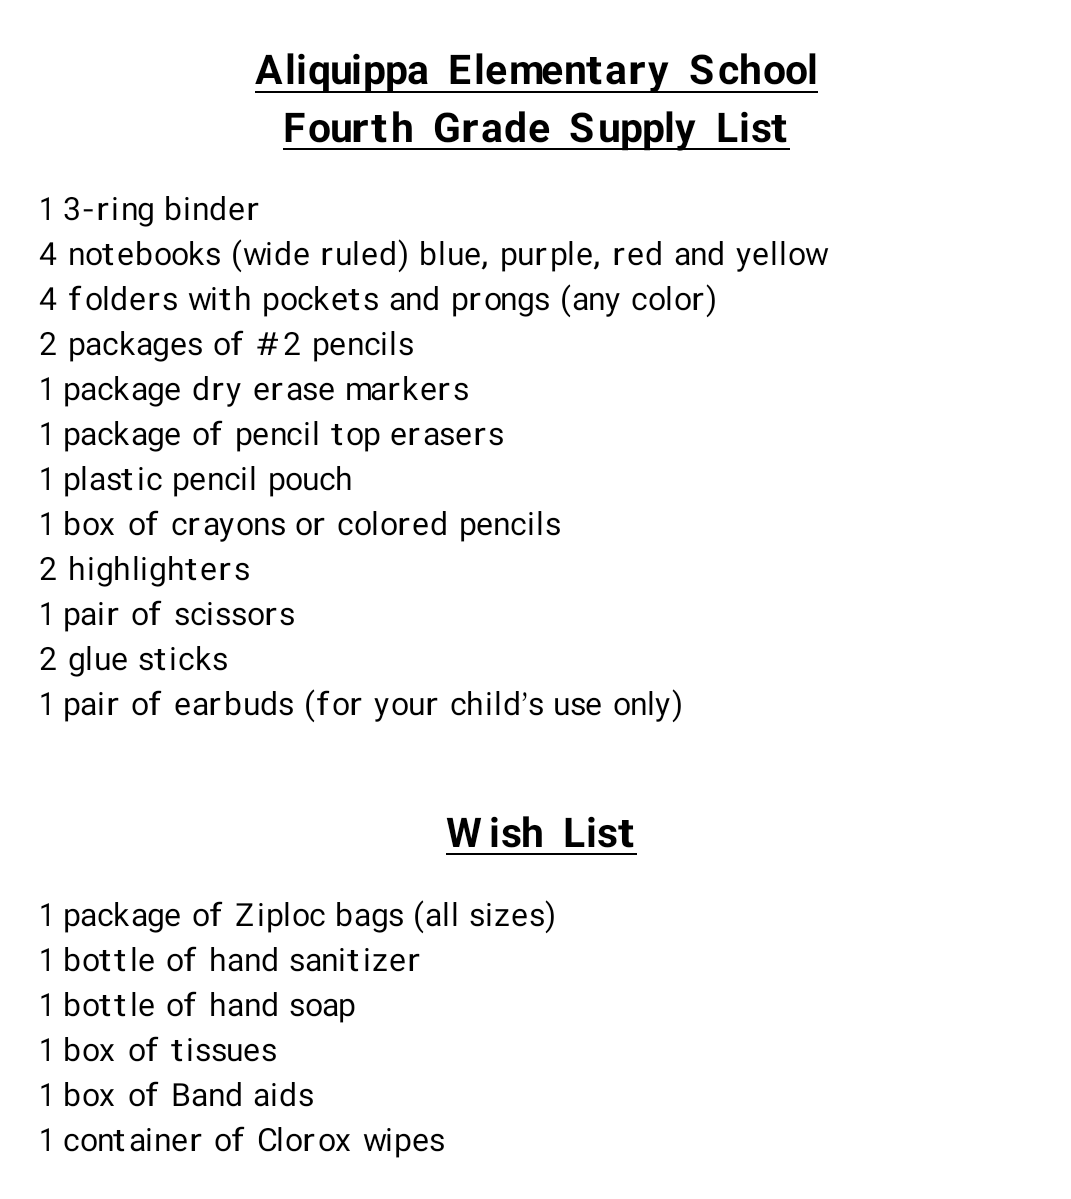 AES 4th Grade Supply List